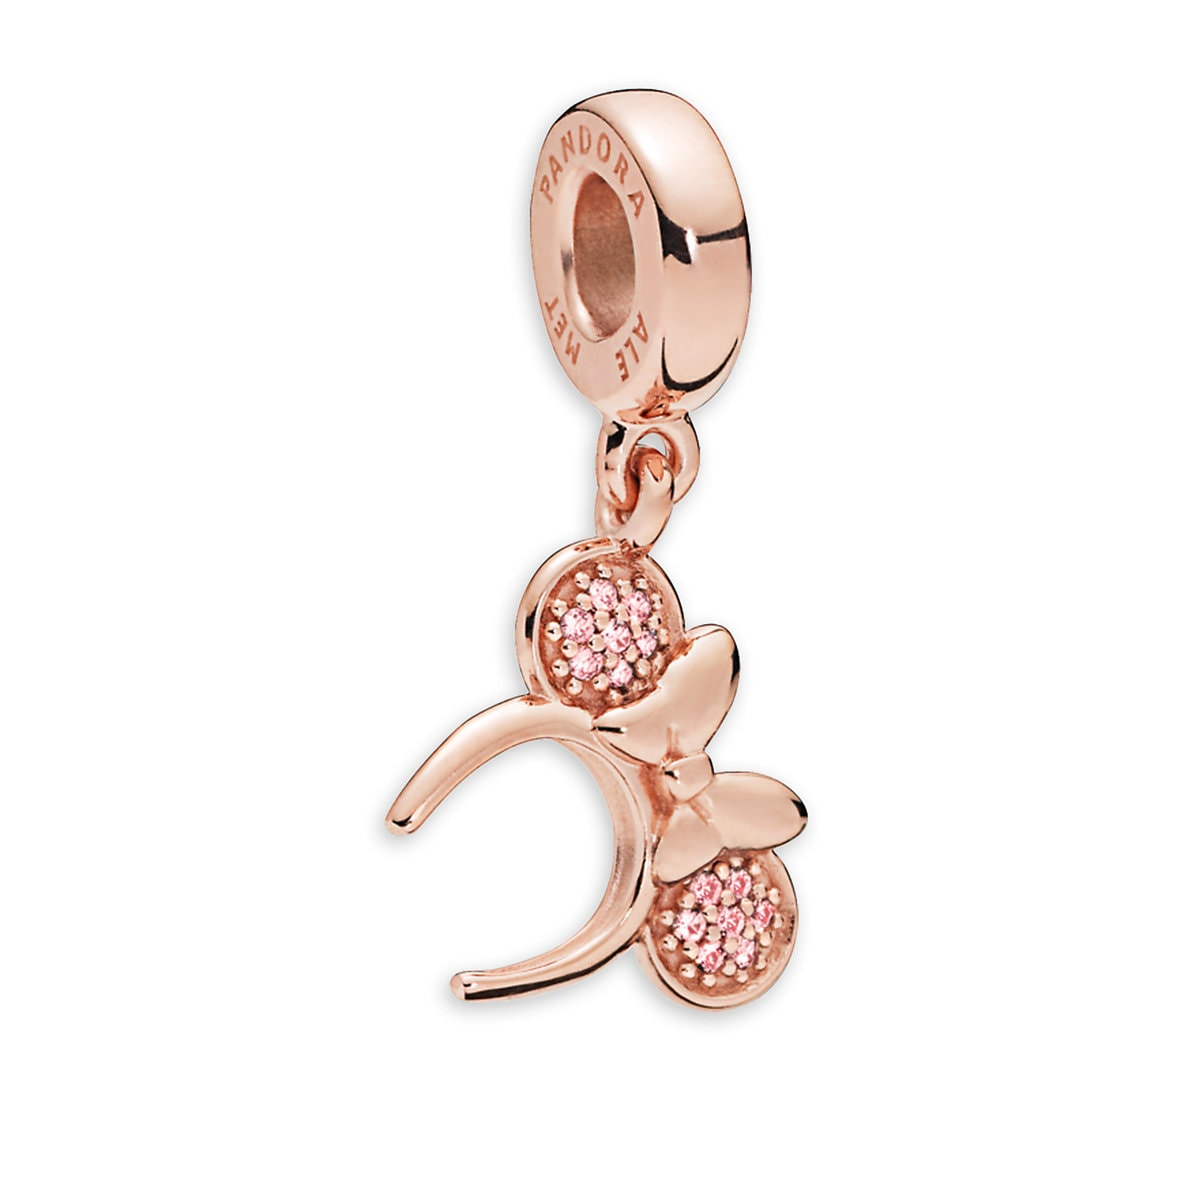 49fdf7481 Product Image of Minnie Mouse Rose Ear Headband Charm by Pandora Jewelry # 1